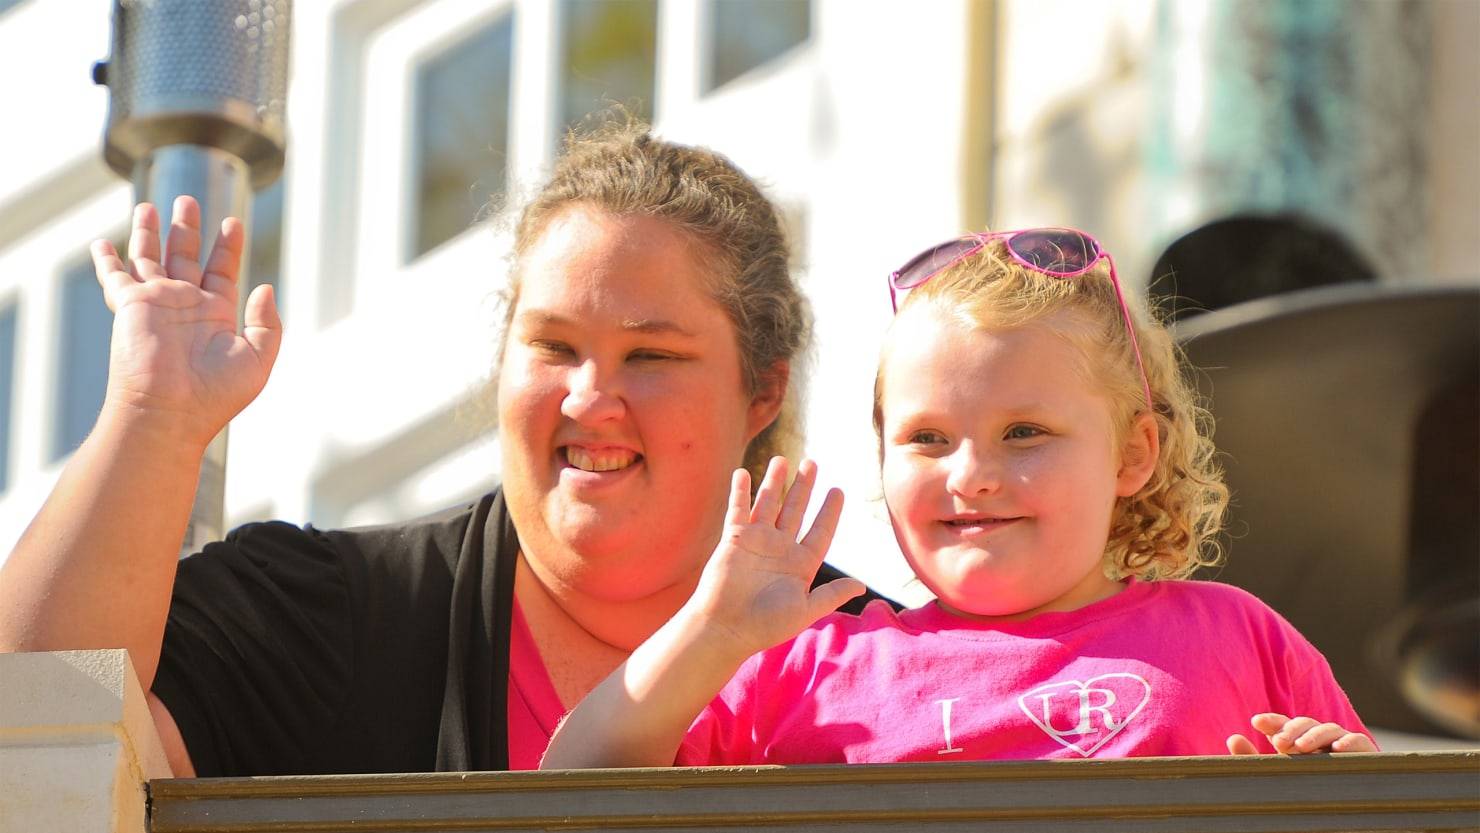 The Shocking Rise and Fall of 'Honey Boo Boo'